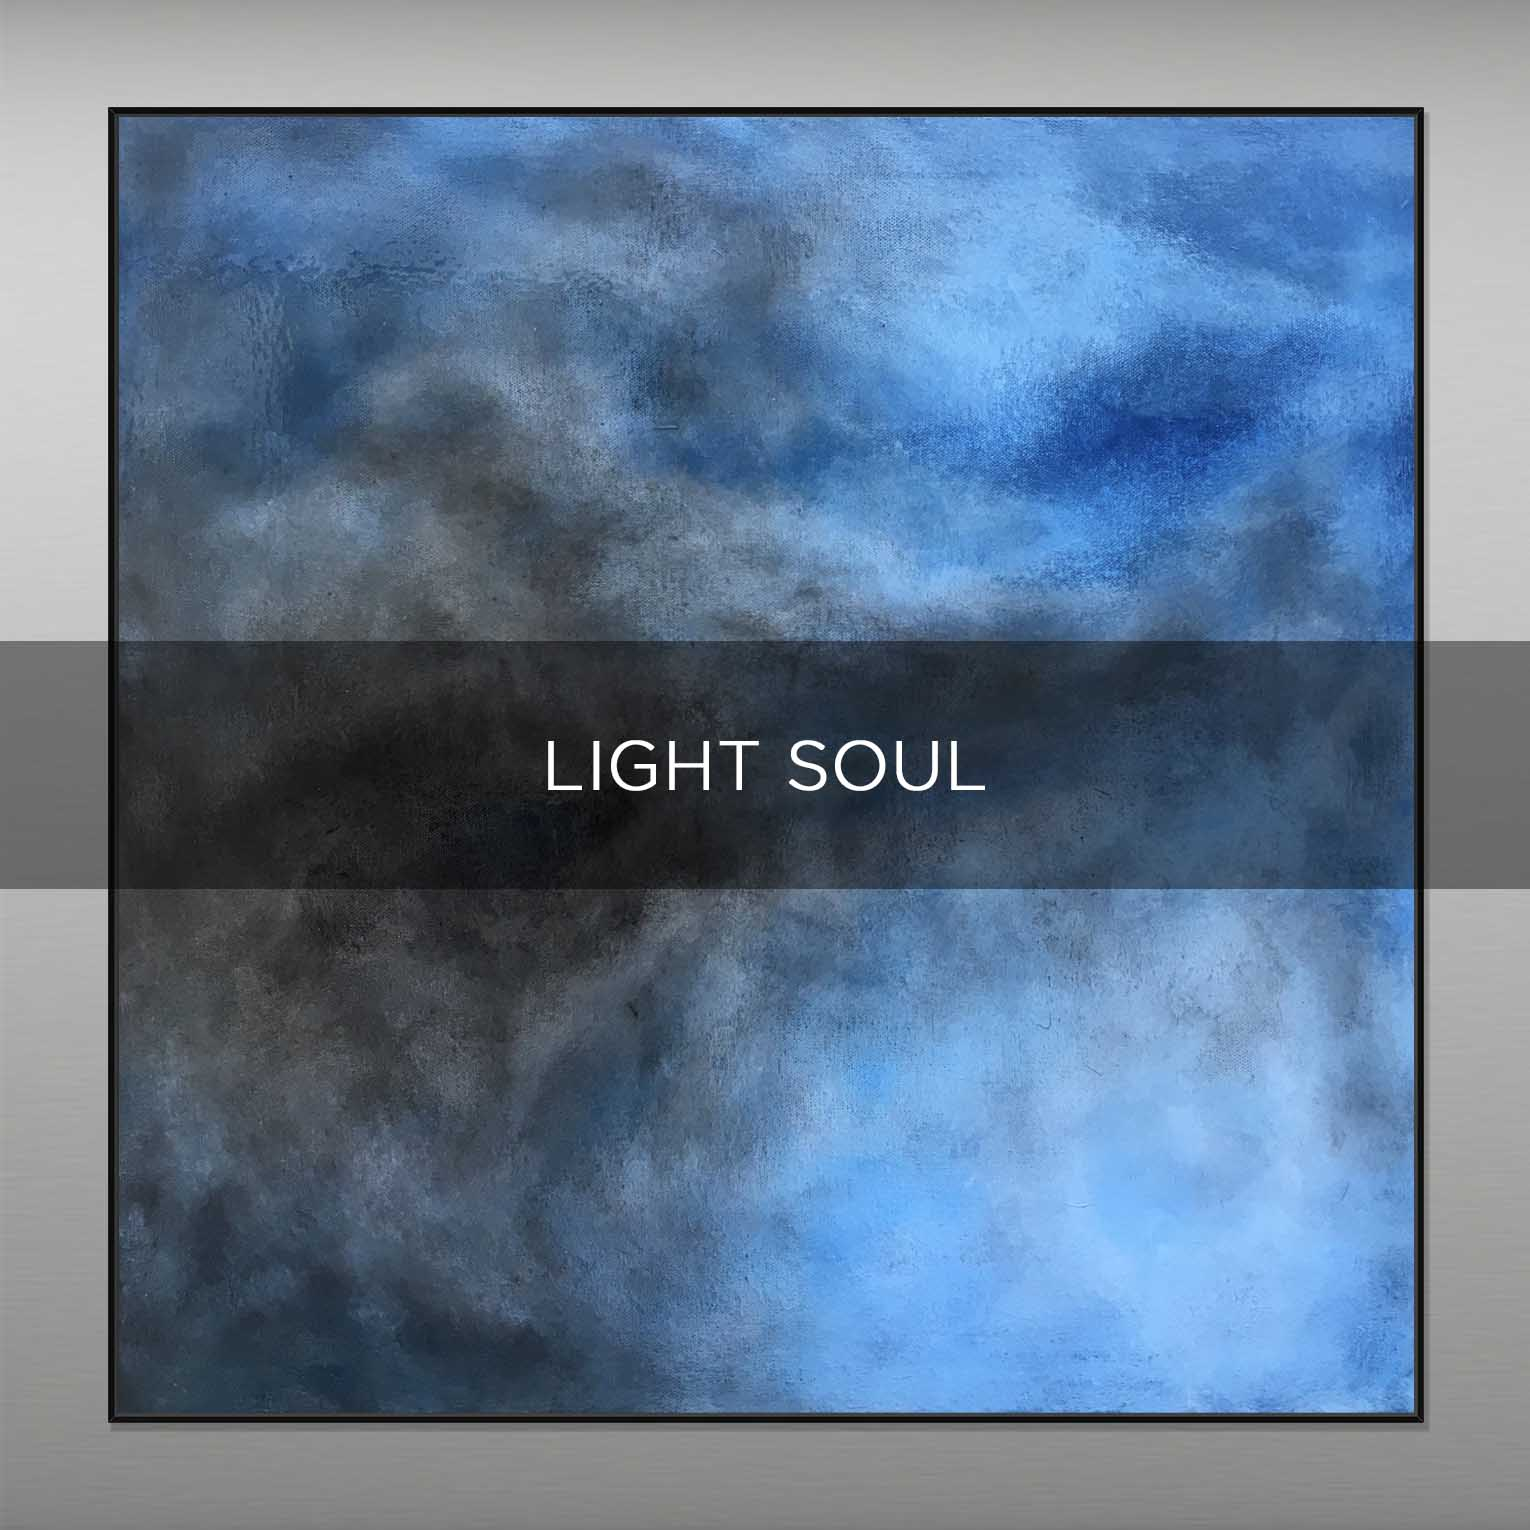 LIGHT SOUL - QBX DESIGN QUADRI ASTRATTI